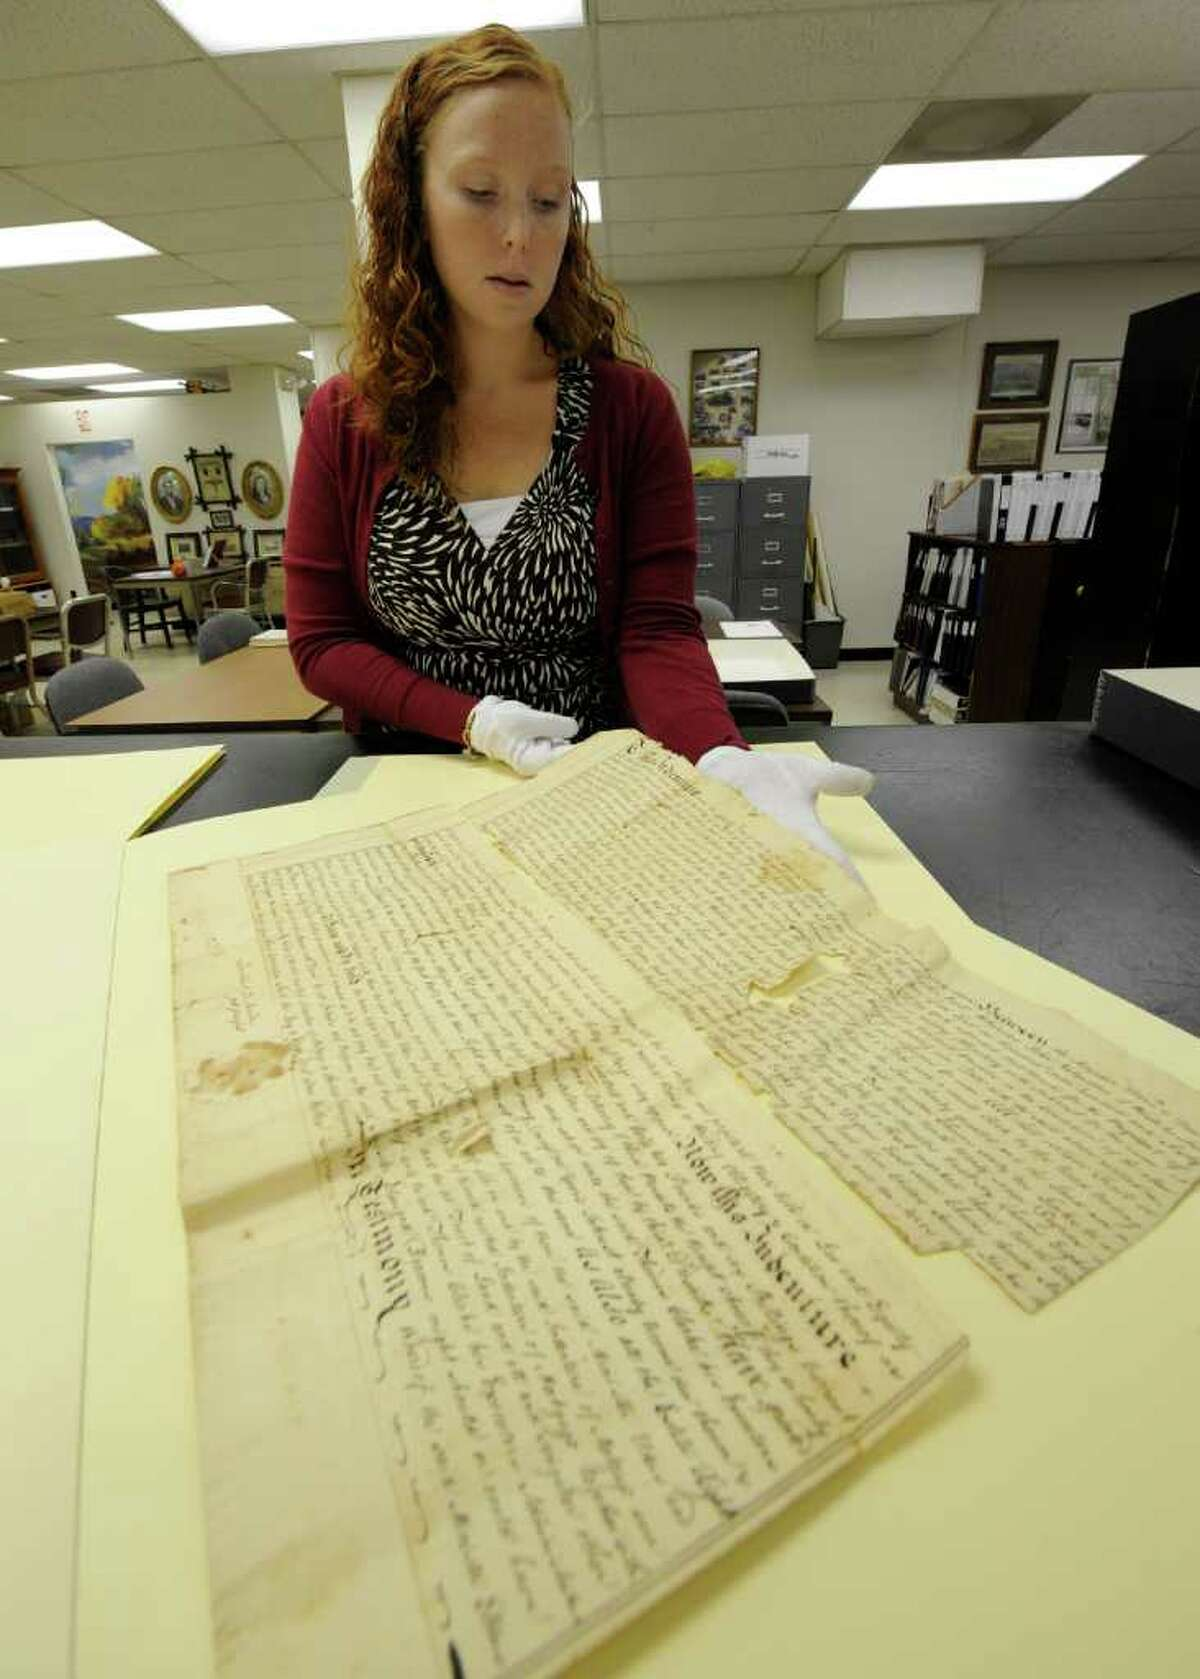 Historian Lauren Roberts, Saratoga County Historian looks over some of the documents October 20, 2011 at the Saratoga County office building in Ballston Spa, N.Y. that were found under a floorboard of a home in Charlton. (Skip Dickstein / Times Union)